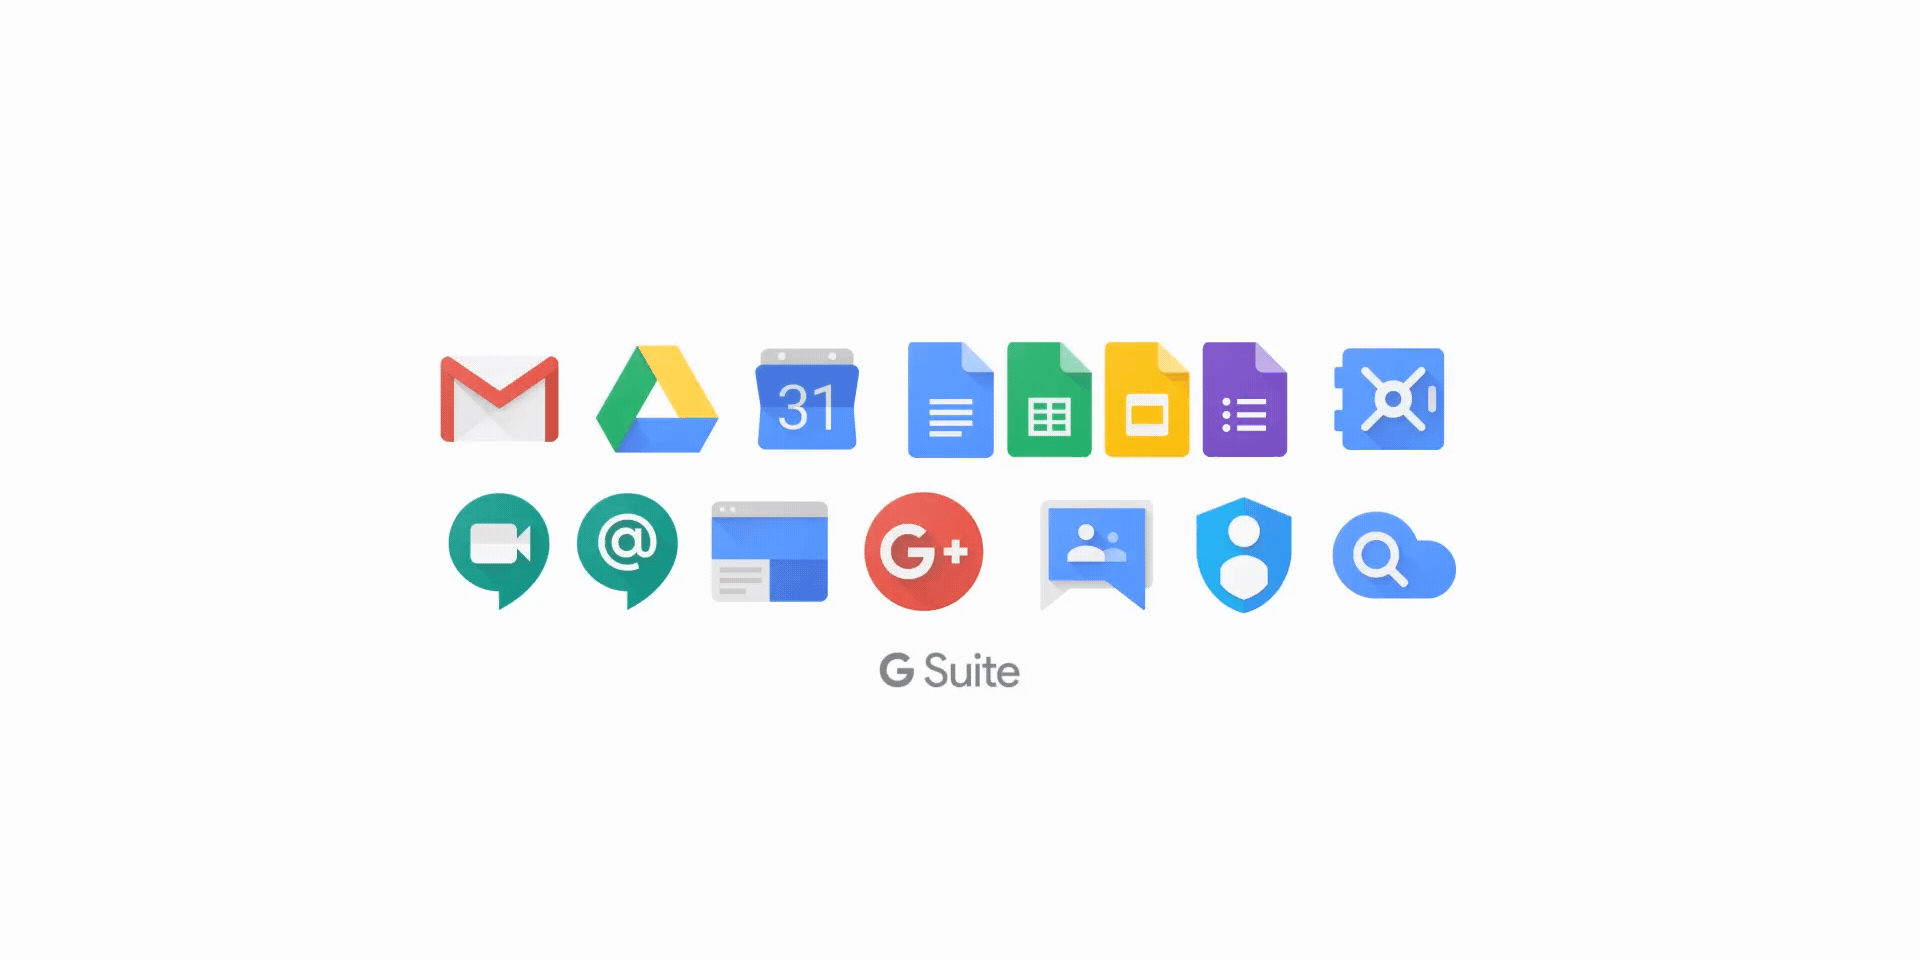 [Update: Live] Google adding prominent help button to web Gmail, Calendar, and Drive - 9to5Google 1